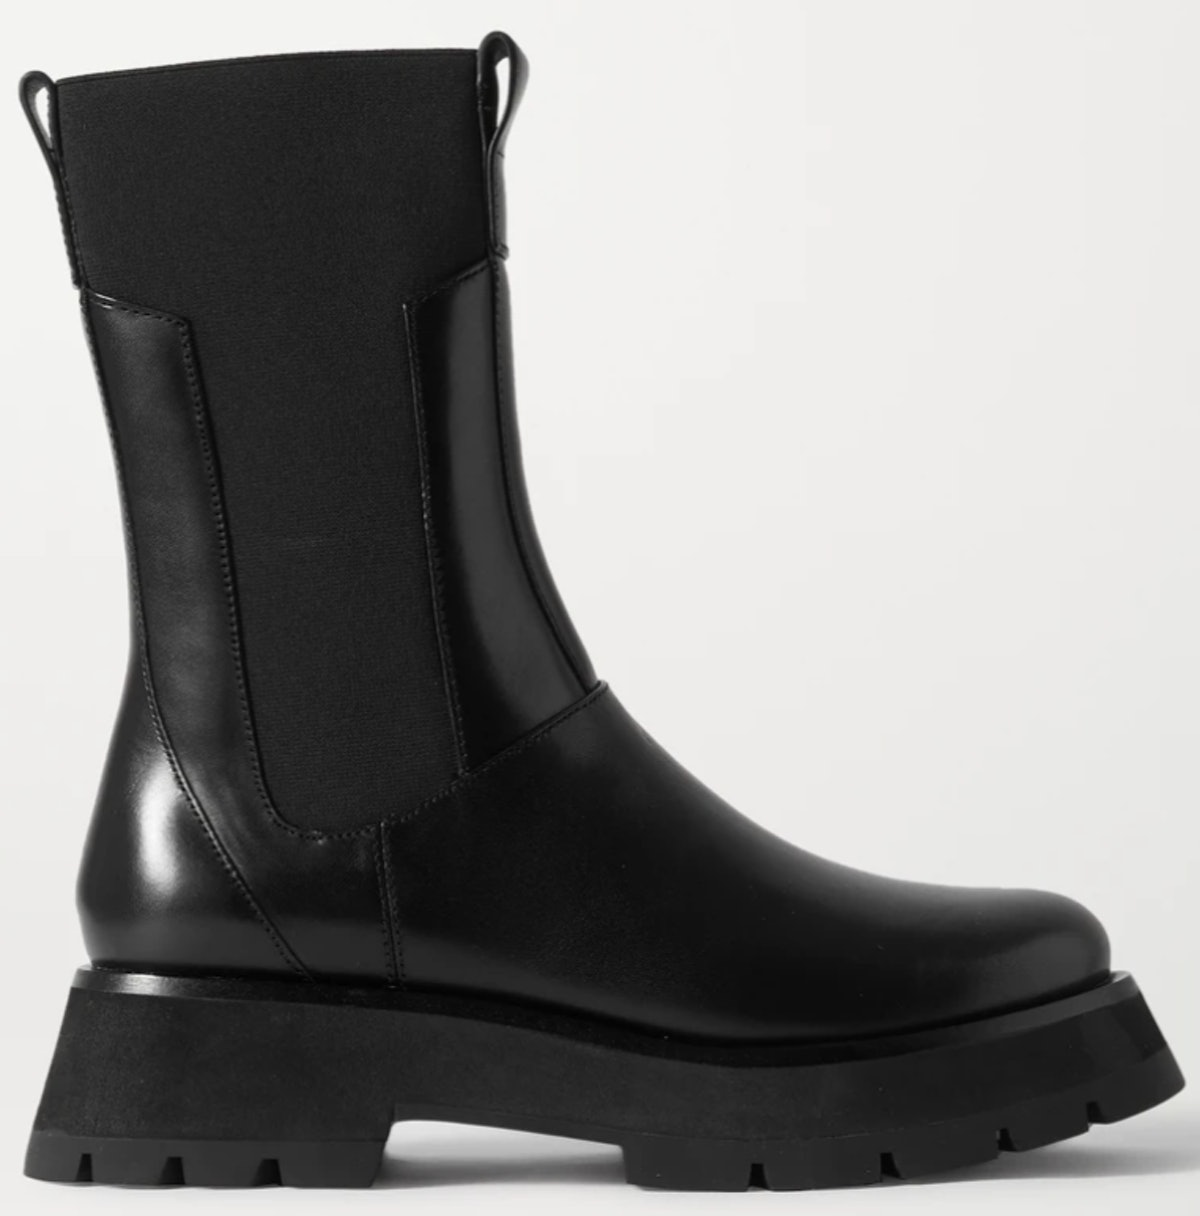 Phillip Lim's Kate Leather Chelsea Combat Boots in black.